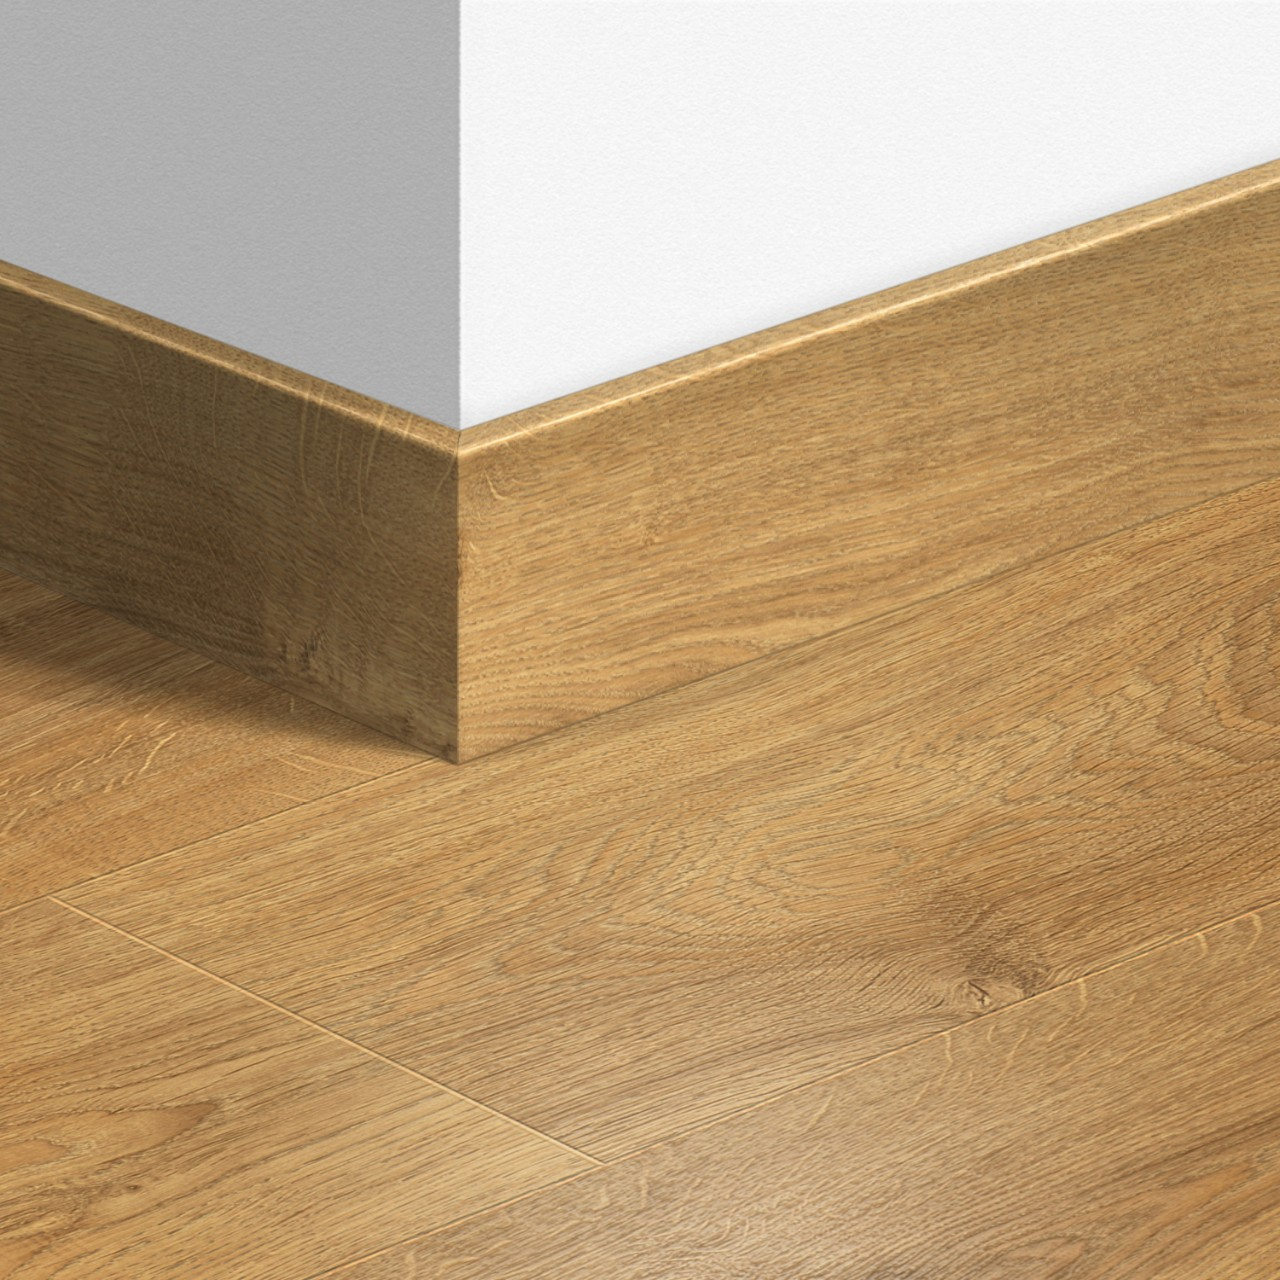 QSLPSKR Laminate Accessories Cambridge oak natural QSLPSKR01662